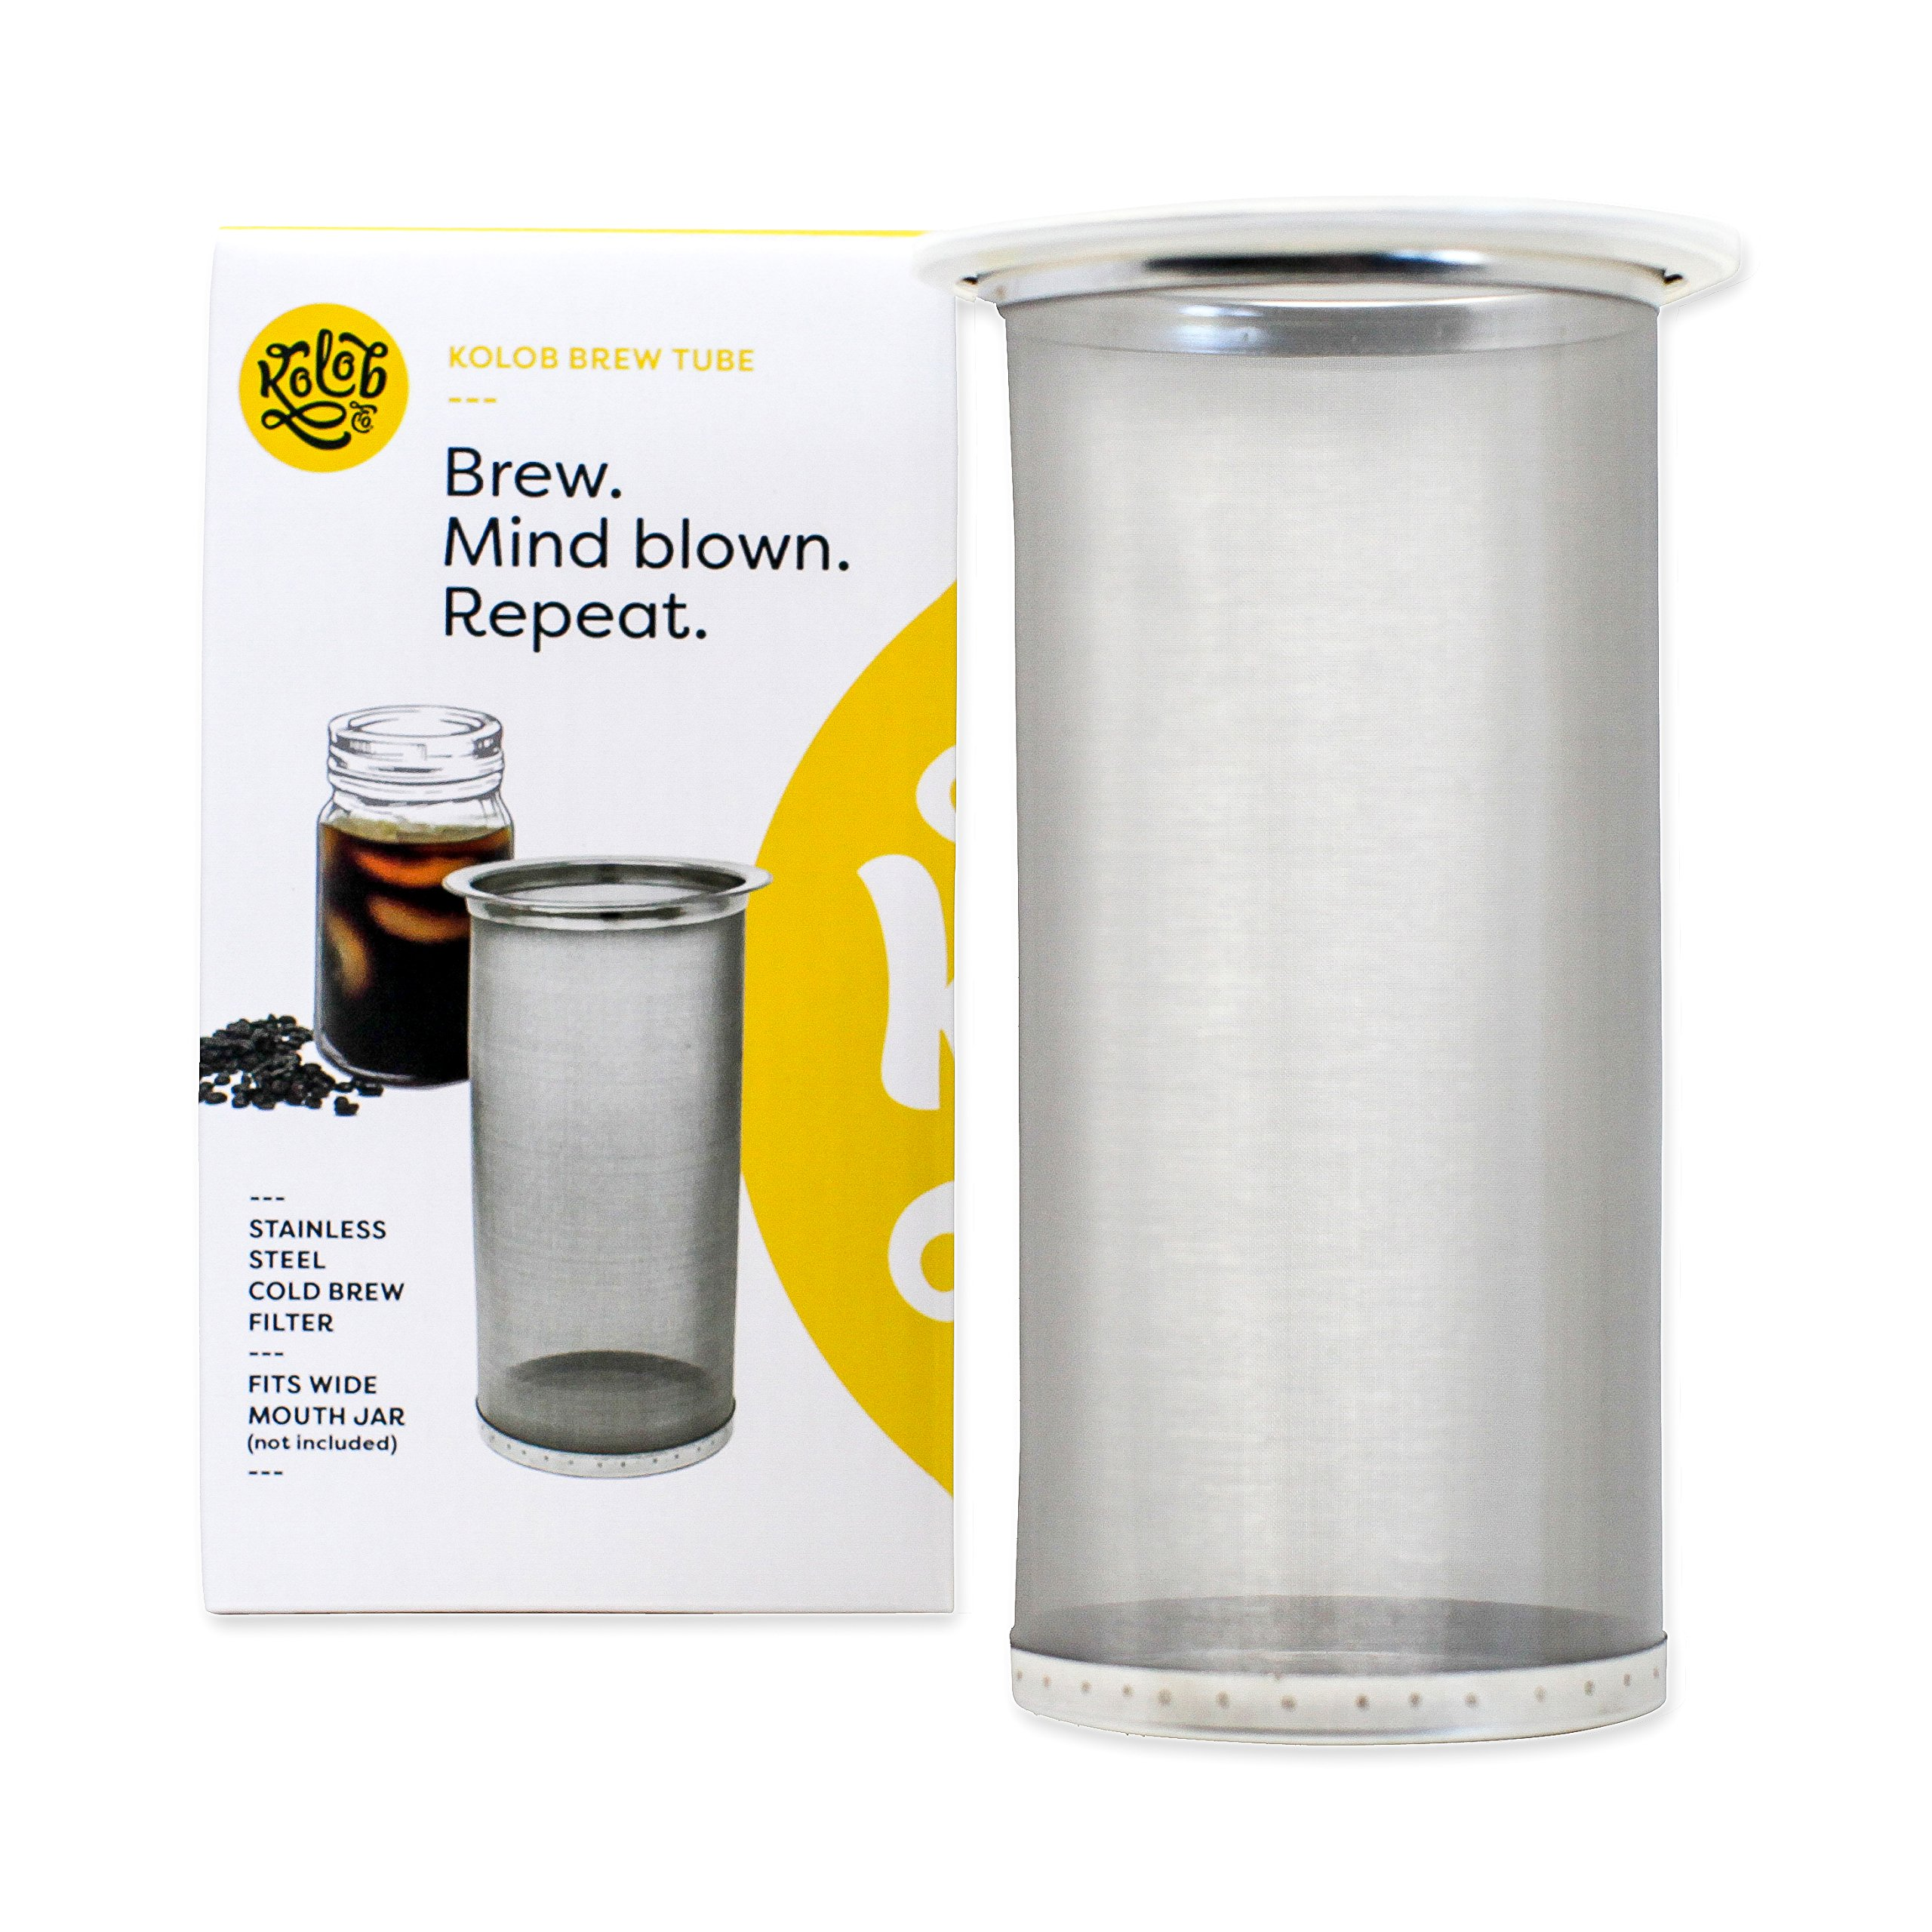 Cold Brew Coffee Maker - 1 or 2 Quart Stainless Steel Mesh Reusable Filter - Homemade Strong Iced Coffee Concentrate Brewer Machine and Loose Leaf Tea Infuser - Wide Mouth Glass Mason Jar Carafe Kit by Kolob (Image #1)